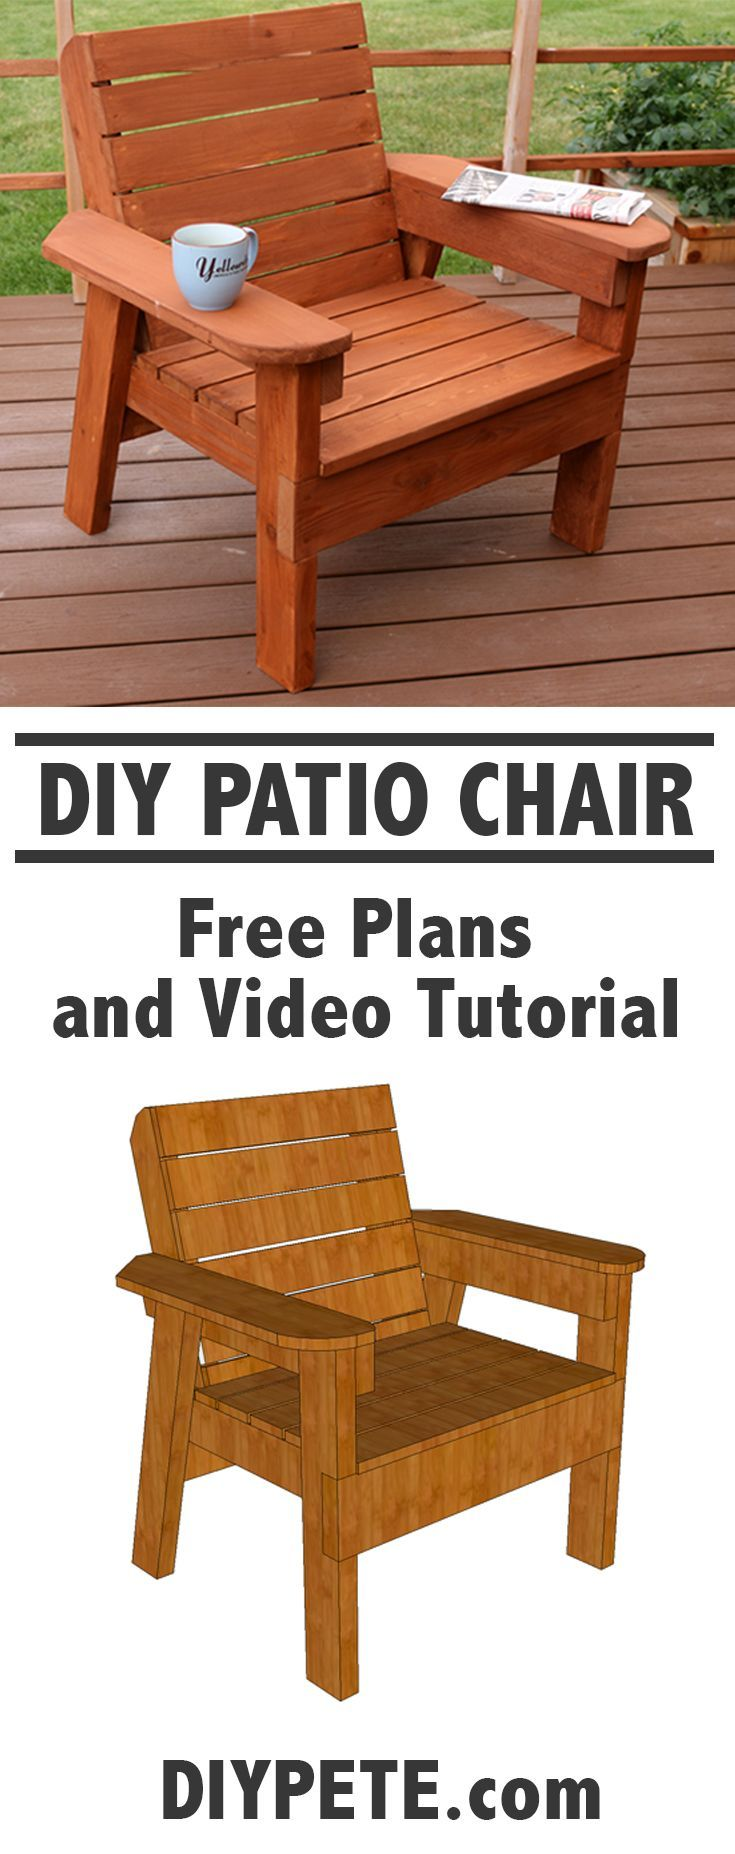 664 best DIY Wood Working Projects images on Pinterest